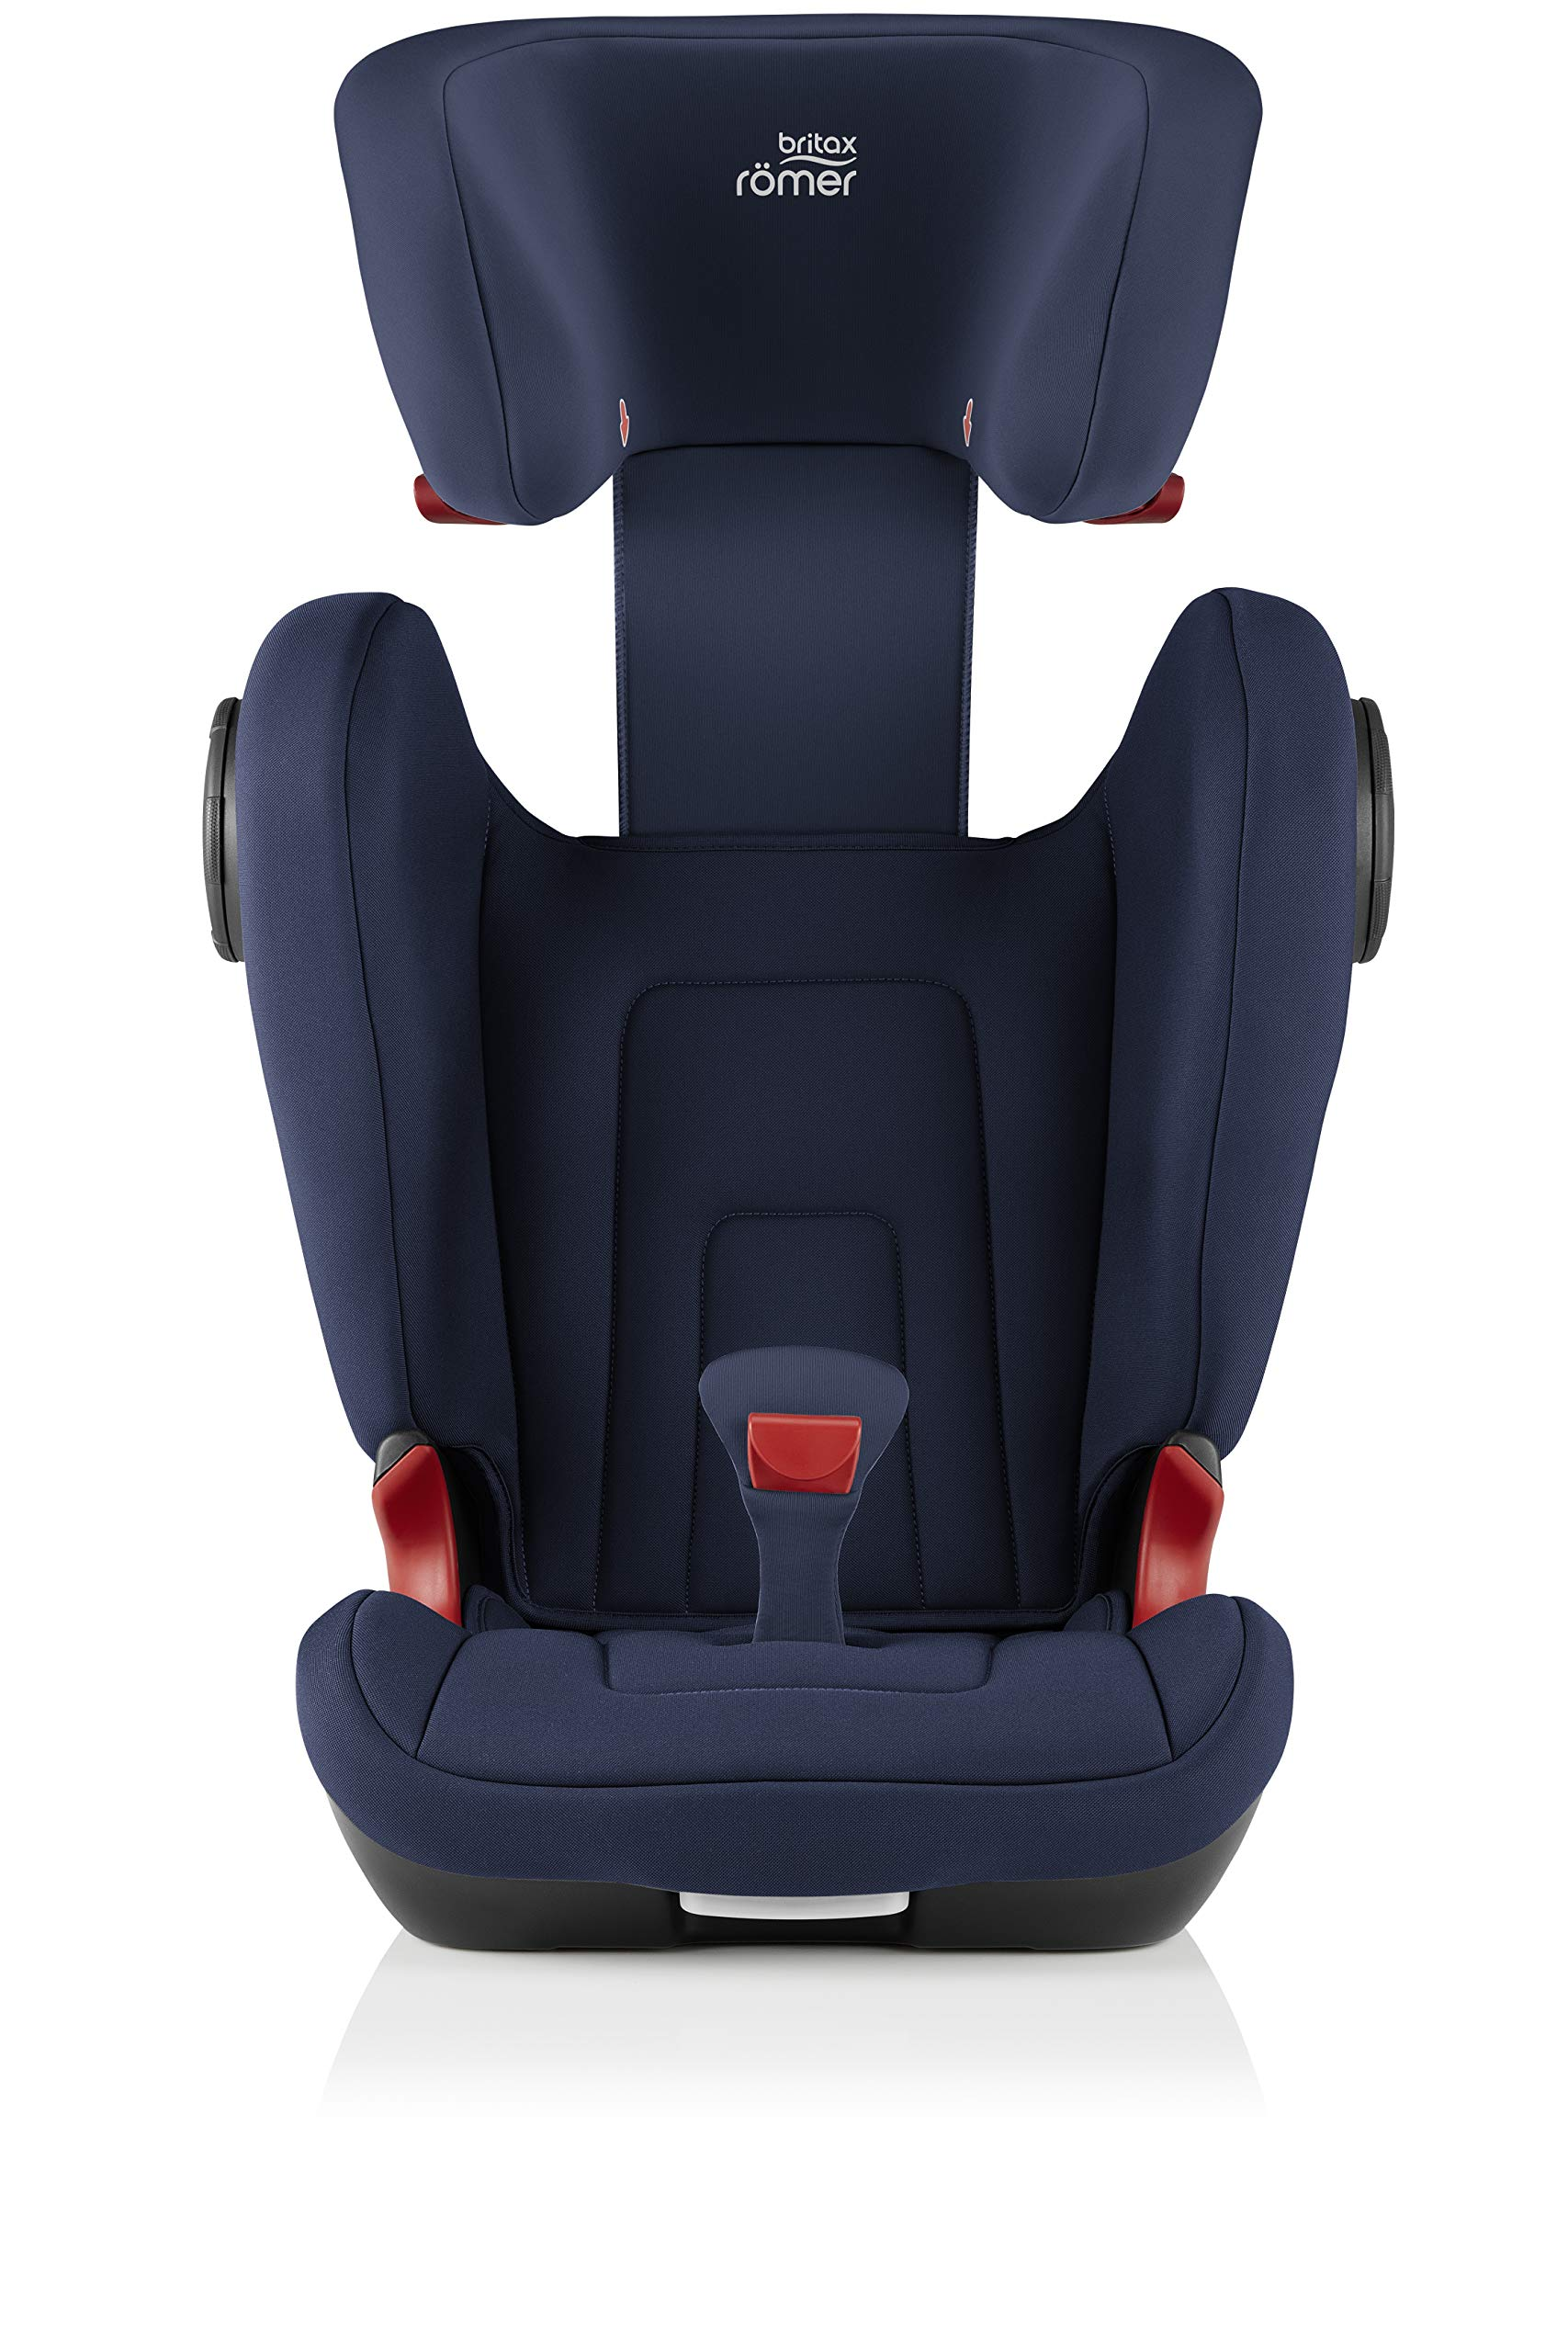 Britax Römer KIDFIX² S Group 2-3 (15-36kg) Car Seat - Moonlight Blue  Advanced side impact protection - sict offers superior protection to your child in the event of a side collision. reducing impact forces by minimising the distance between the car and the car seat. Secure guard - helps to protect your child's delicate abdominal area by adding an extra - a 4th - contact point to the 3-point seat belt. High back booster - protects your child in 3 ways: provides head to hip protection; belt guides provide correct positioning of the seat belt and the padded headrest provides safety and comfort. 7